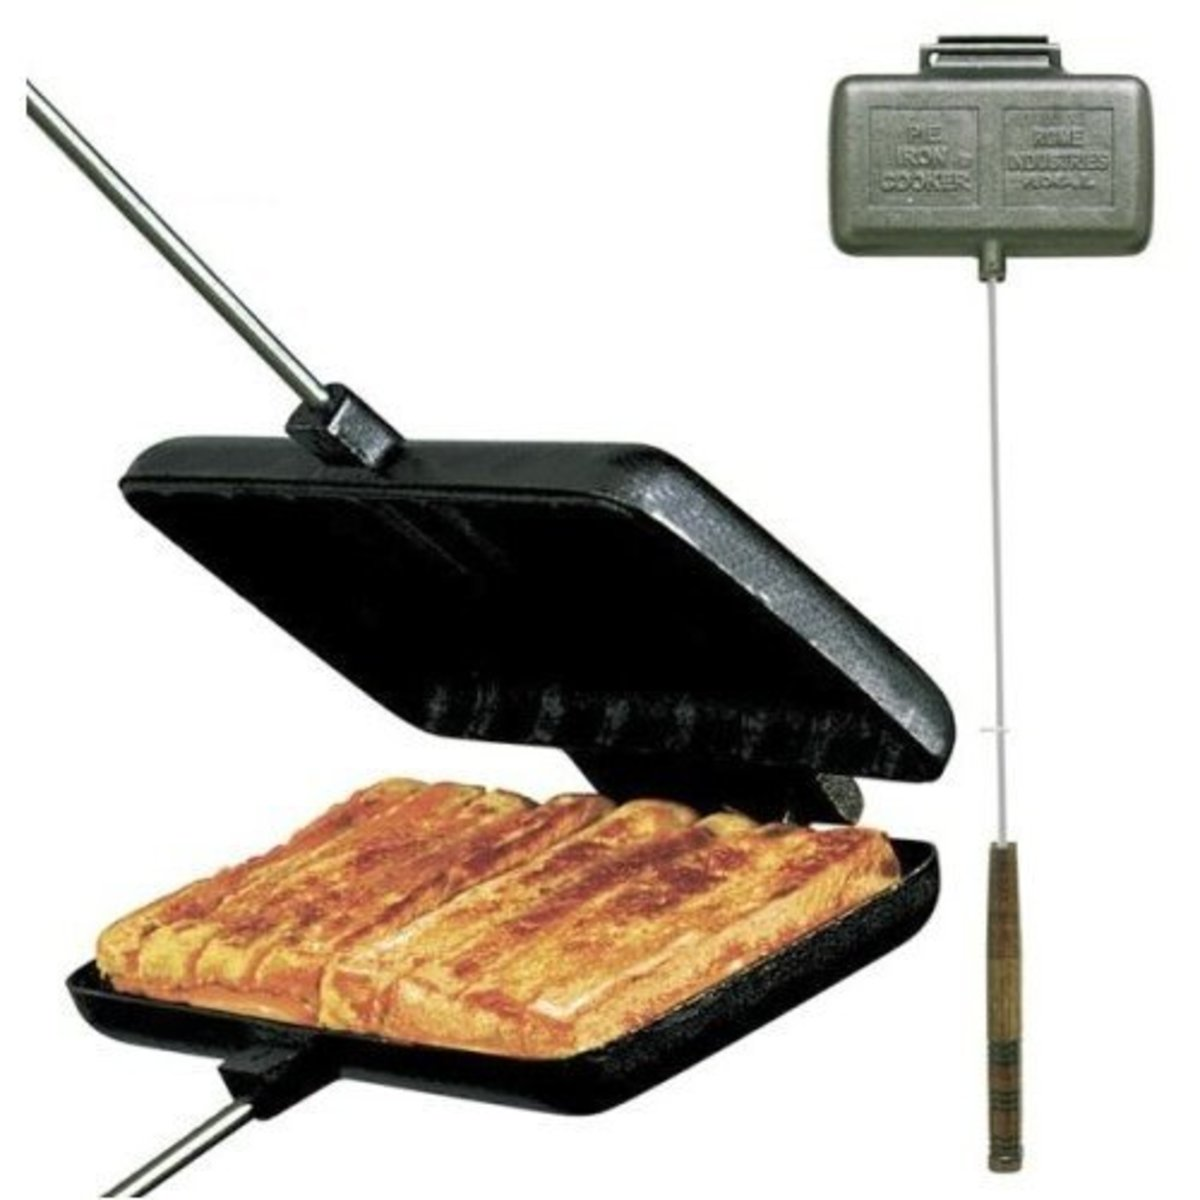 Traditional Camp Lunch - Grilled Cheese sandwich, made with another piece of cast iron cookware - The Pie Iron